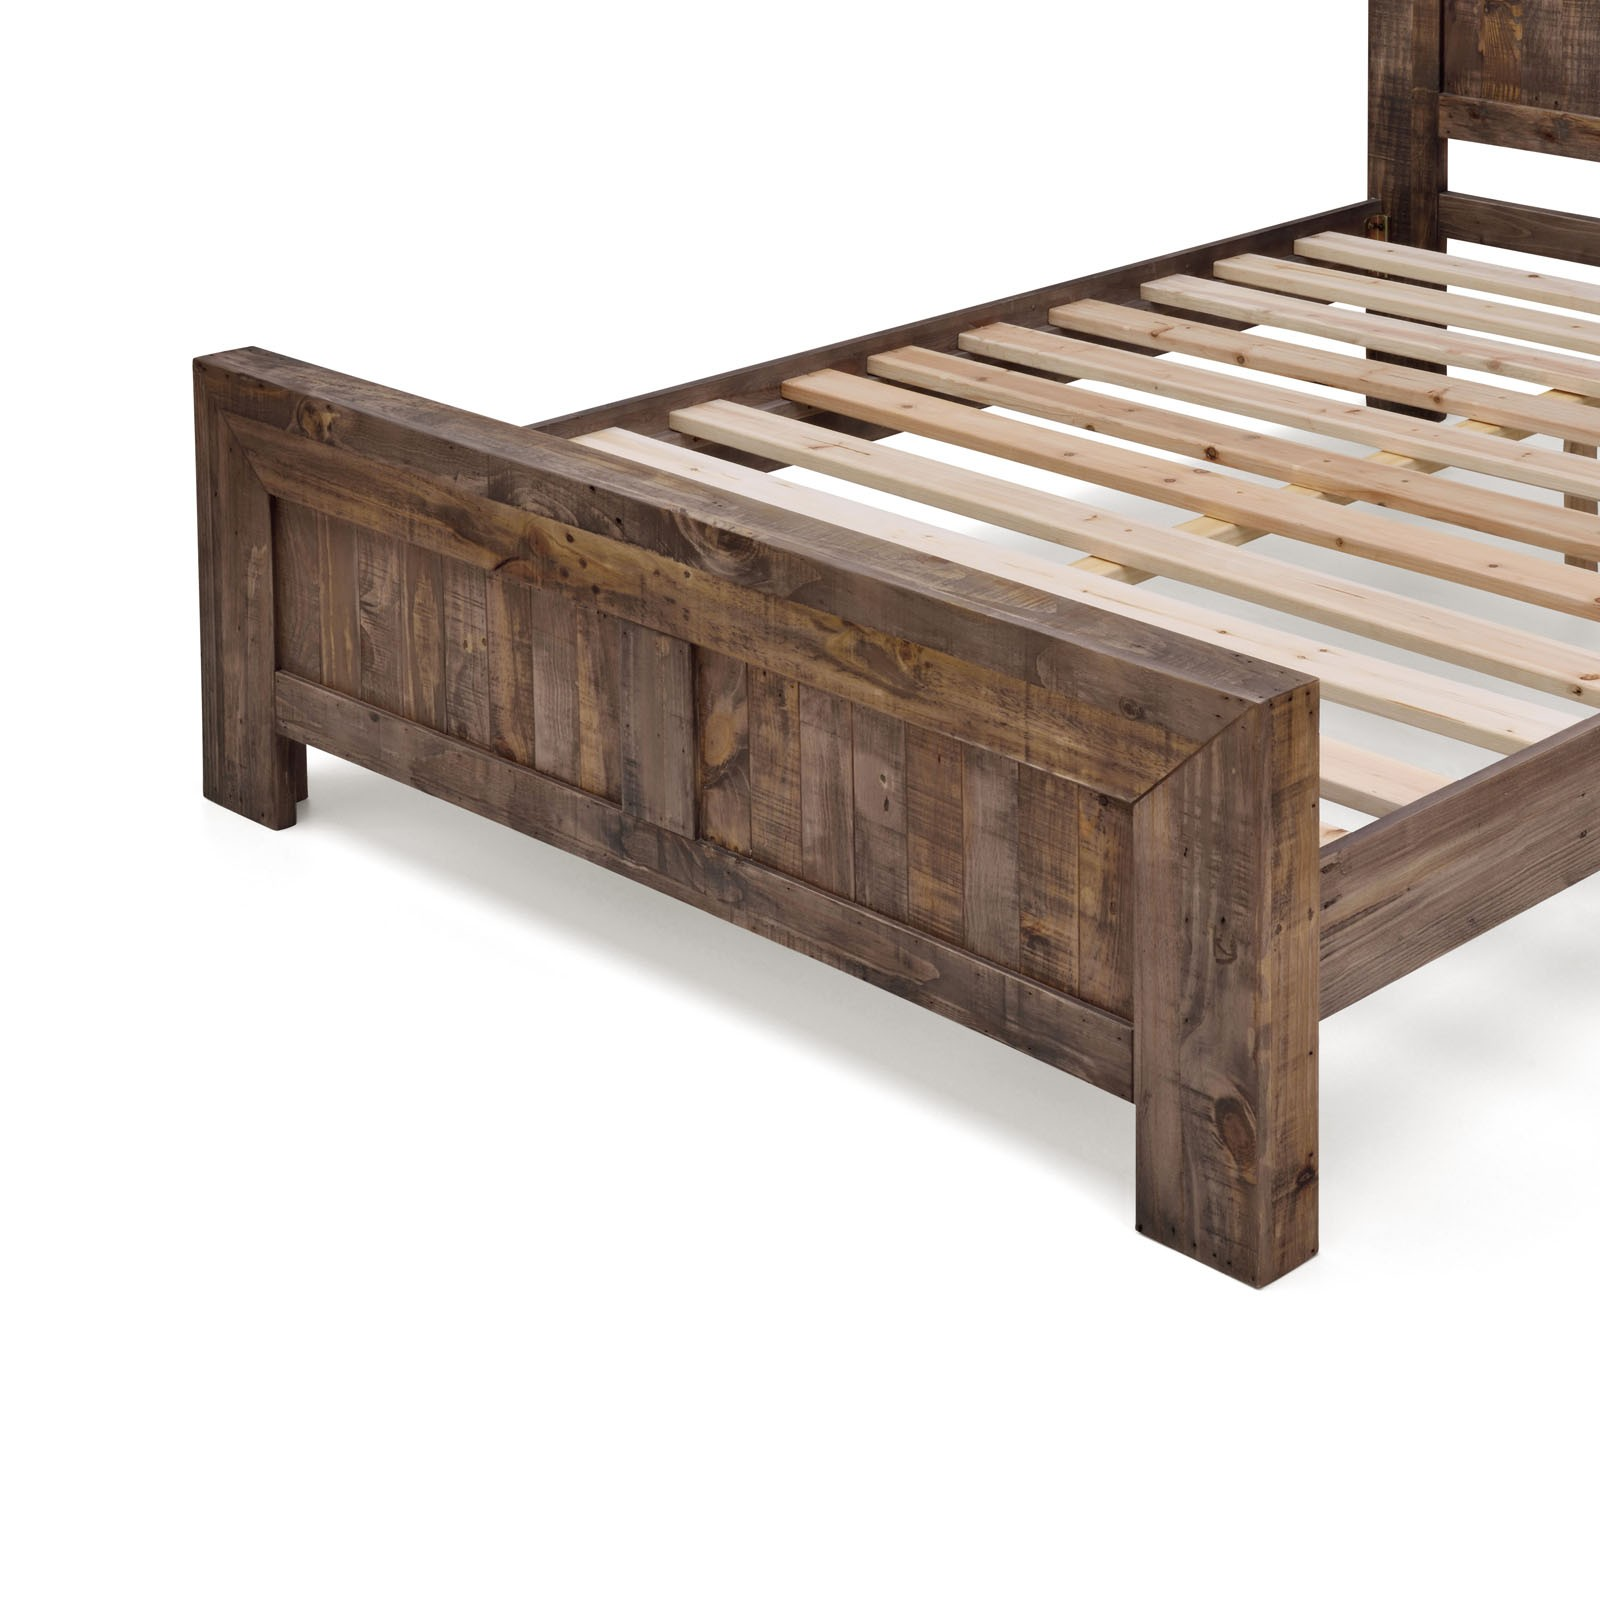 Boston Recycled Solid Pine Rustic Timber Queen Size Bed Frame: rustic bed frames